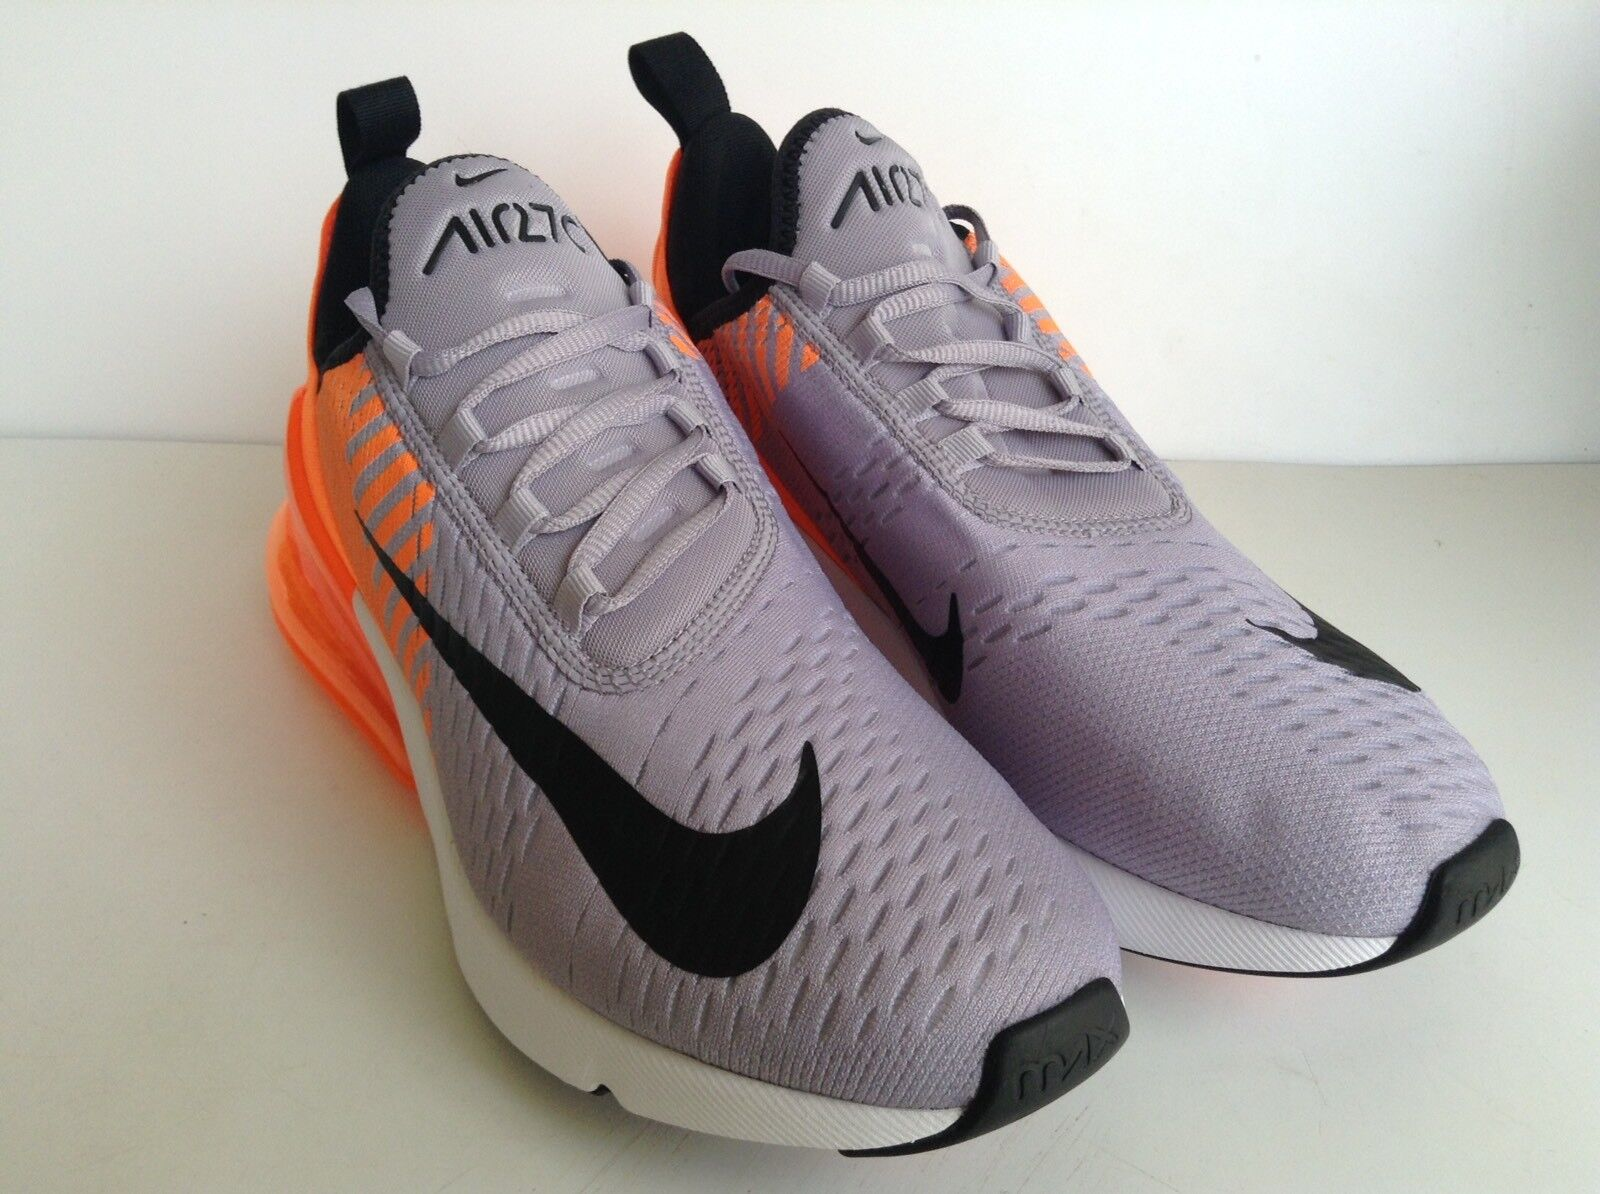 finest selection 4e15c ebe19 get womens nike flyknit lunar2 running shoes multicolored online 162c7  ea51b  hot nike air gris max 270 id orange lgt. gris air lgt.purple noir